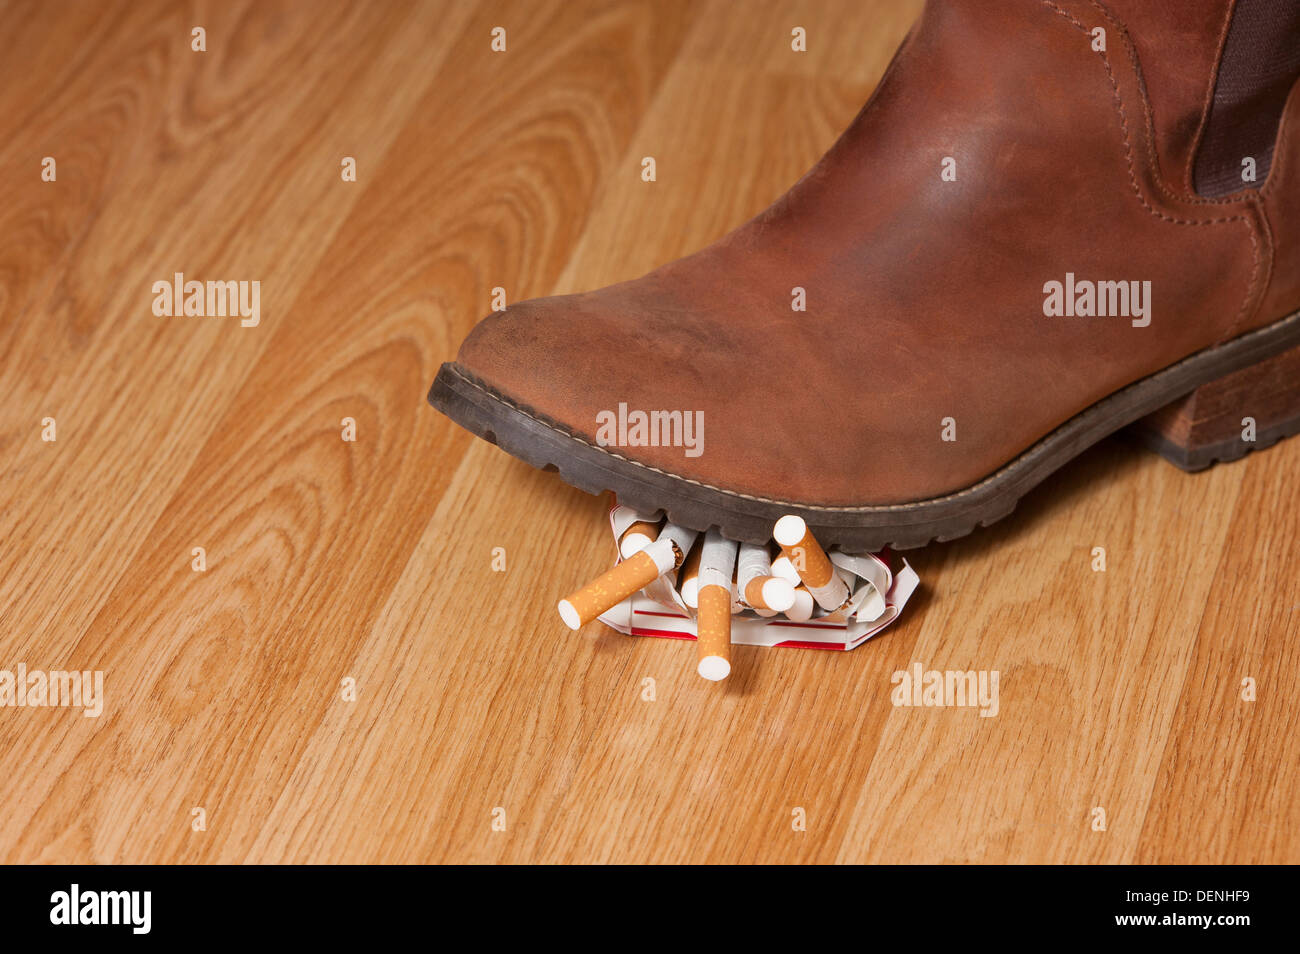 A leather boot shown squashing a packet of cigarettes whilst getting ready to give giving up smoking  for stoptober . - Stock Image